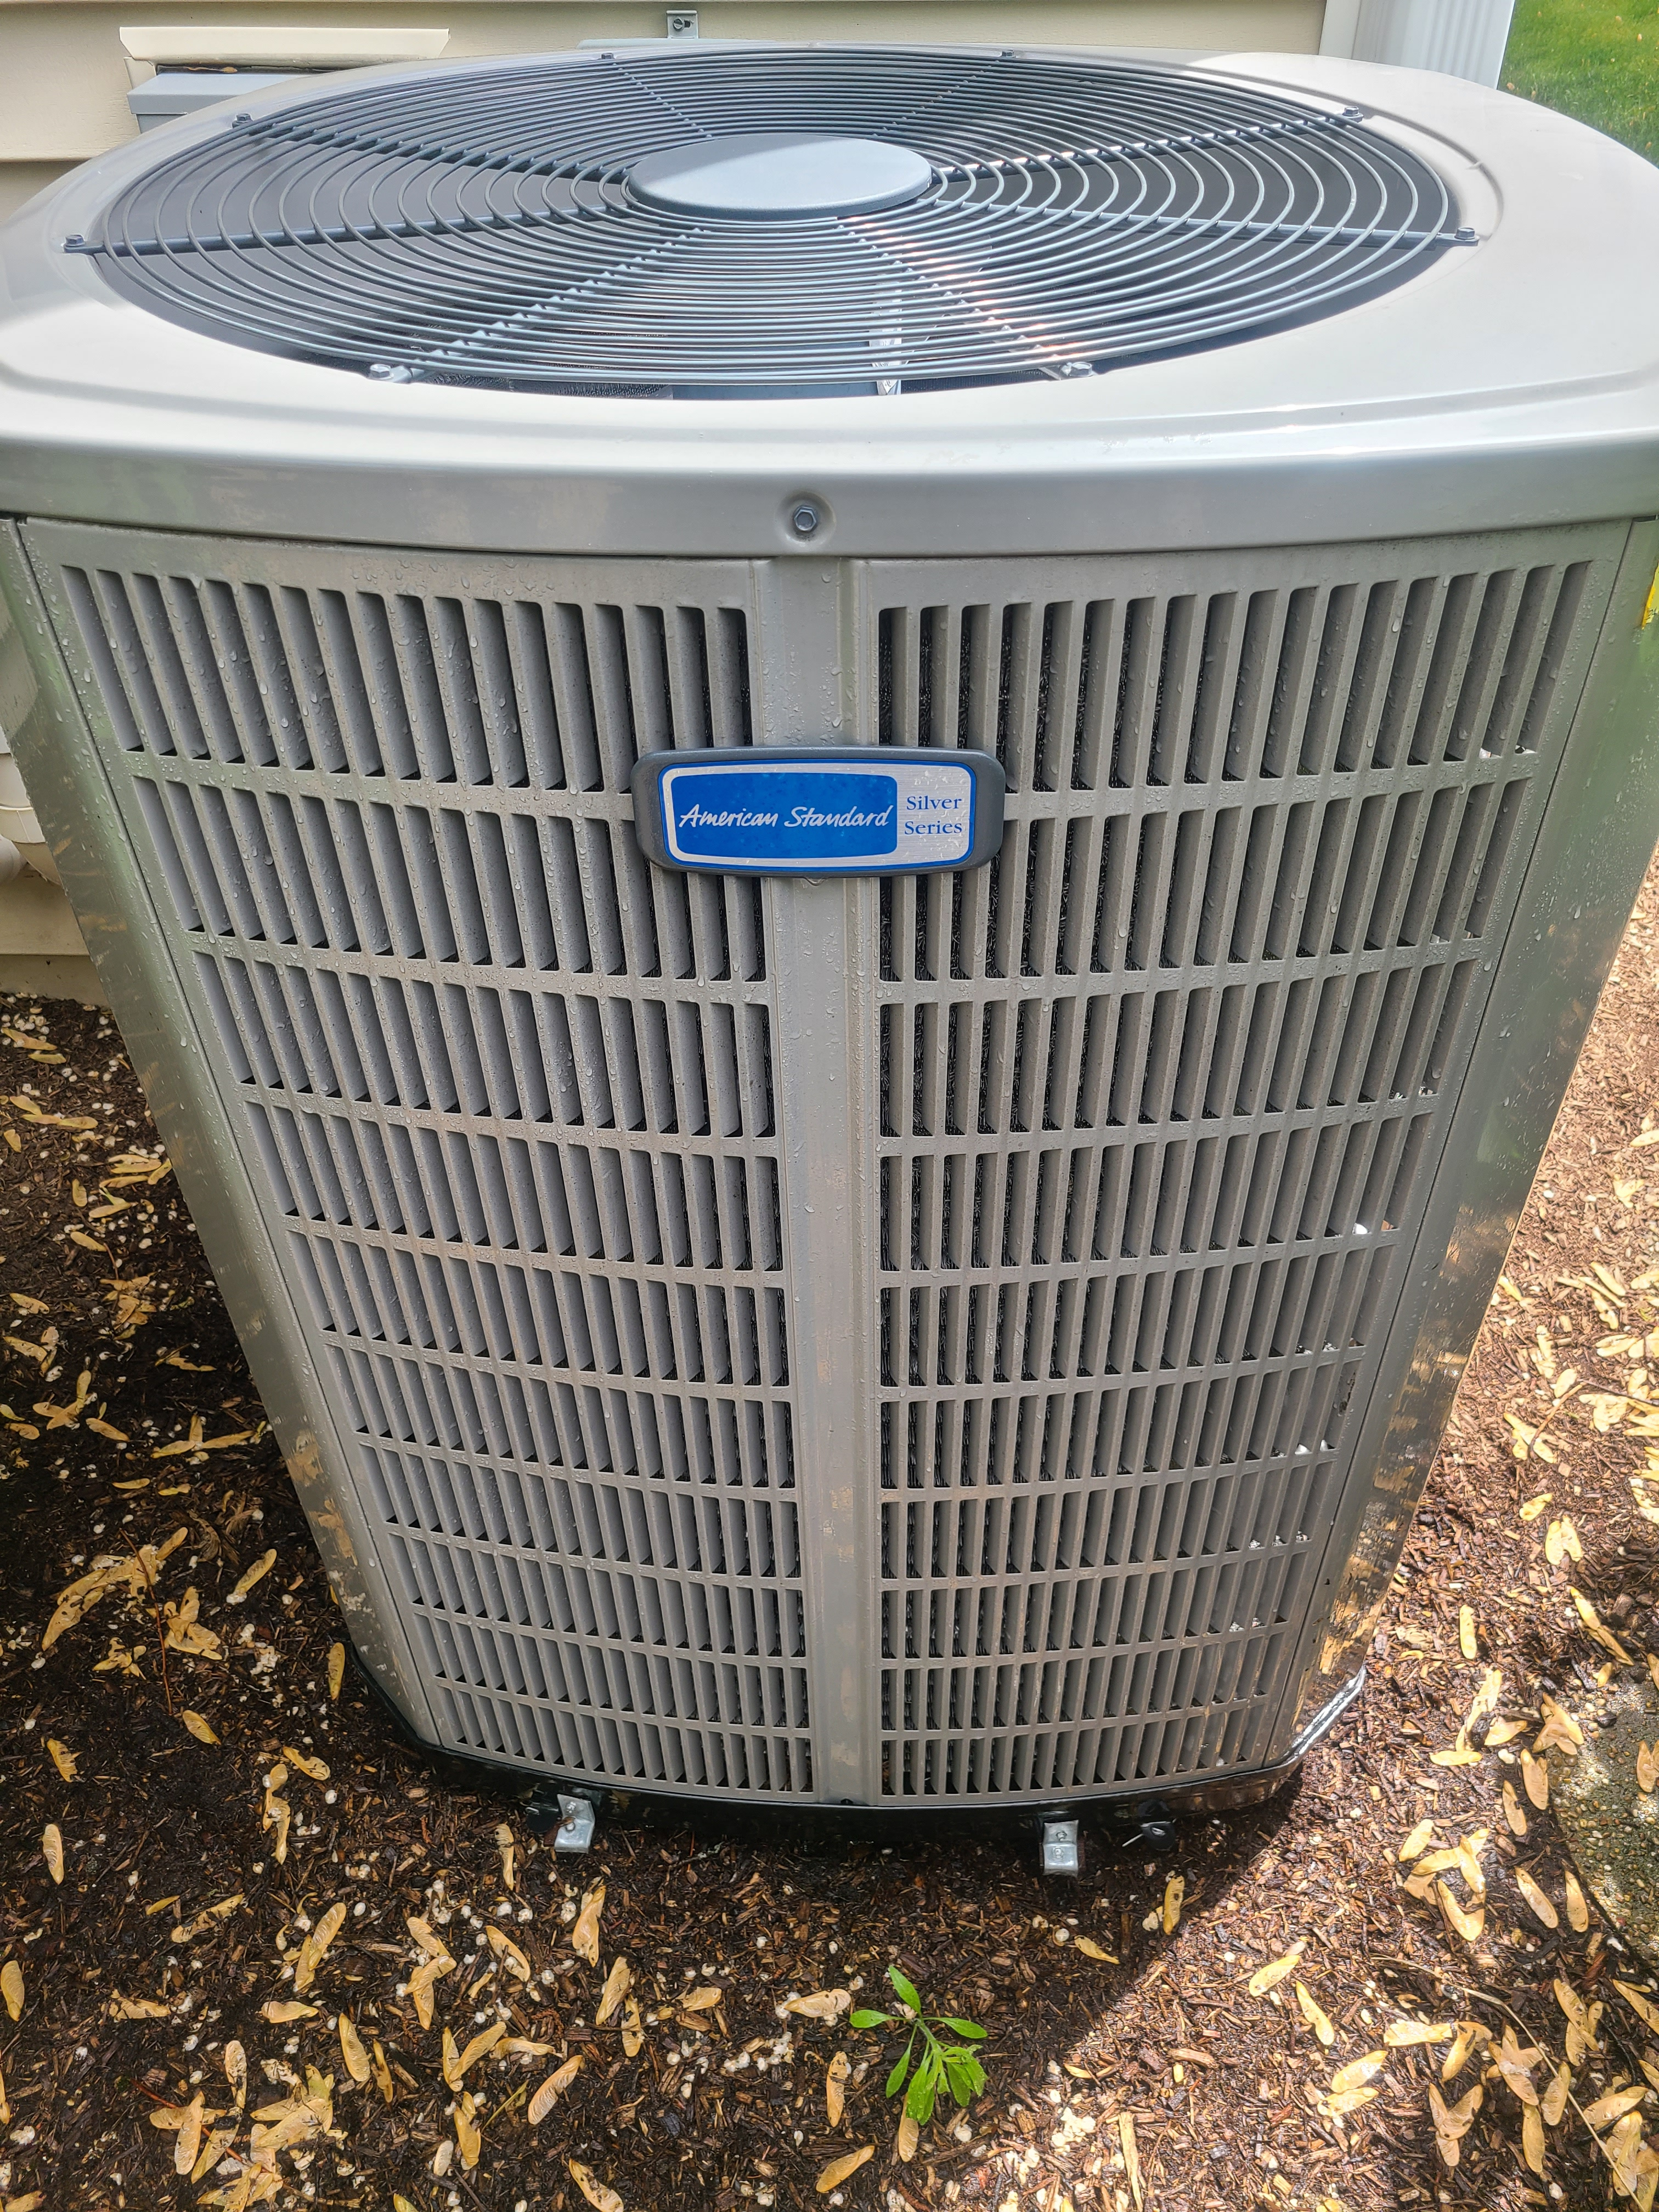 American Standard air conditioning maintenance for Comfort Club.